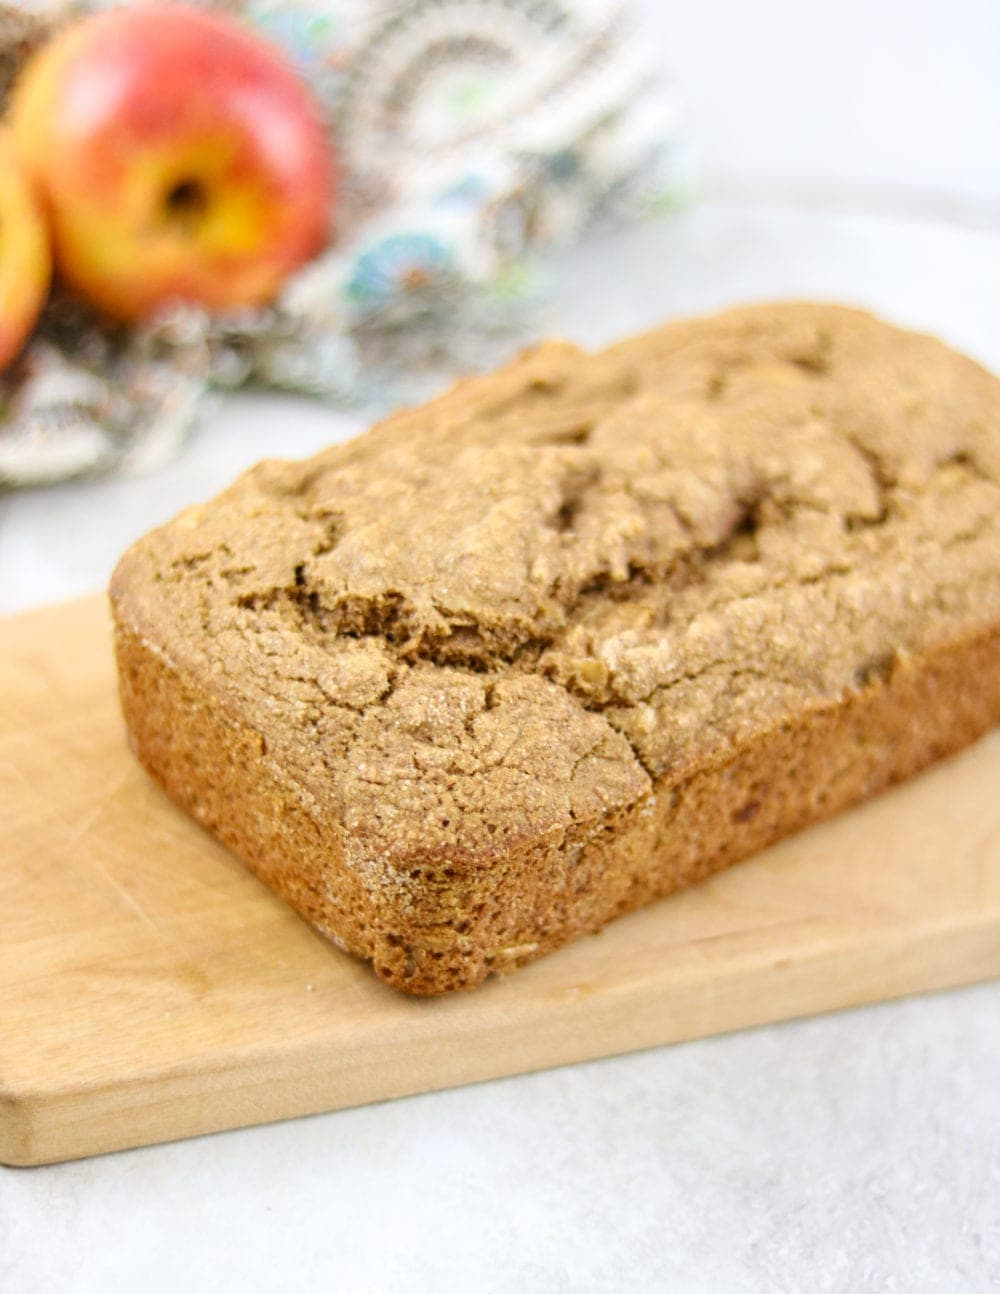 Loaf of whole wheat apple bread on wooden cutting board.